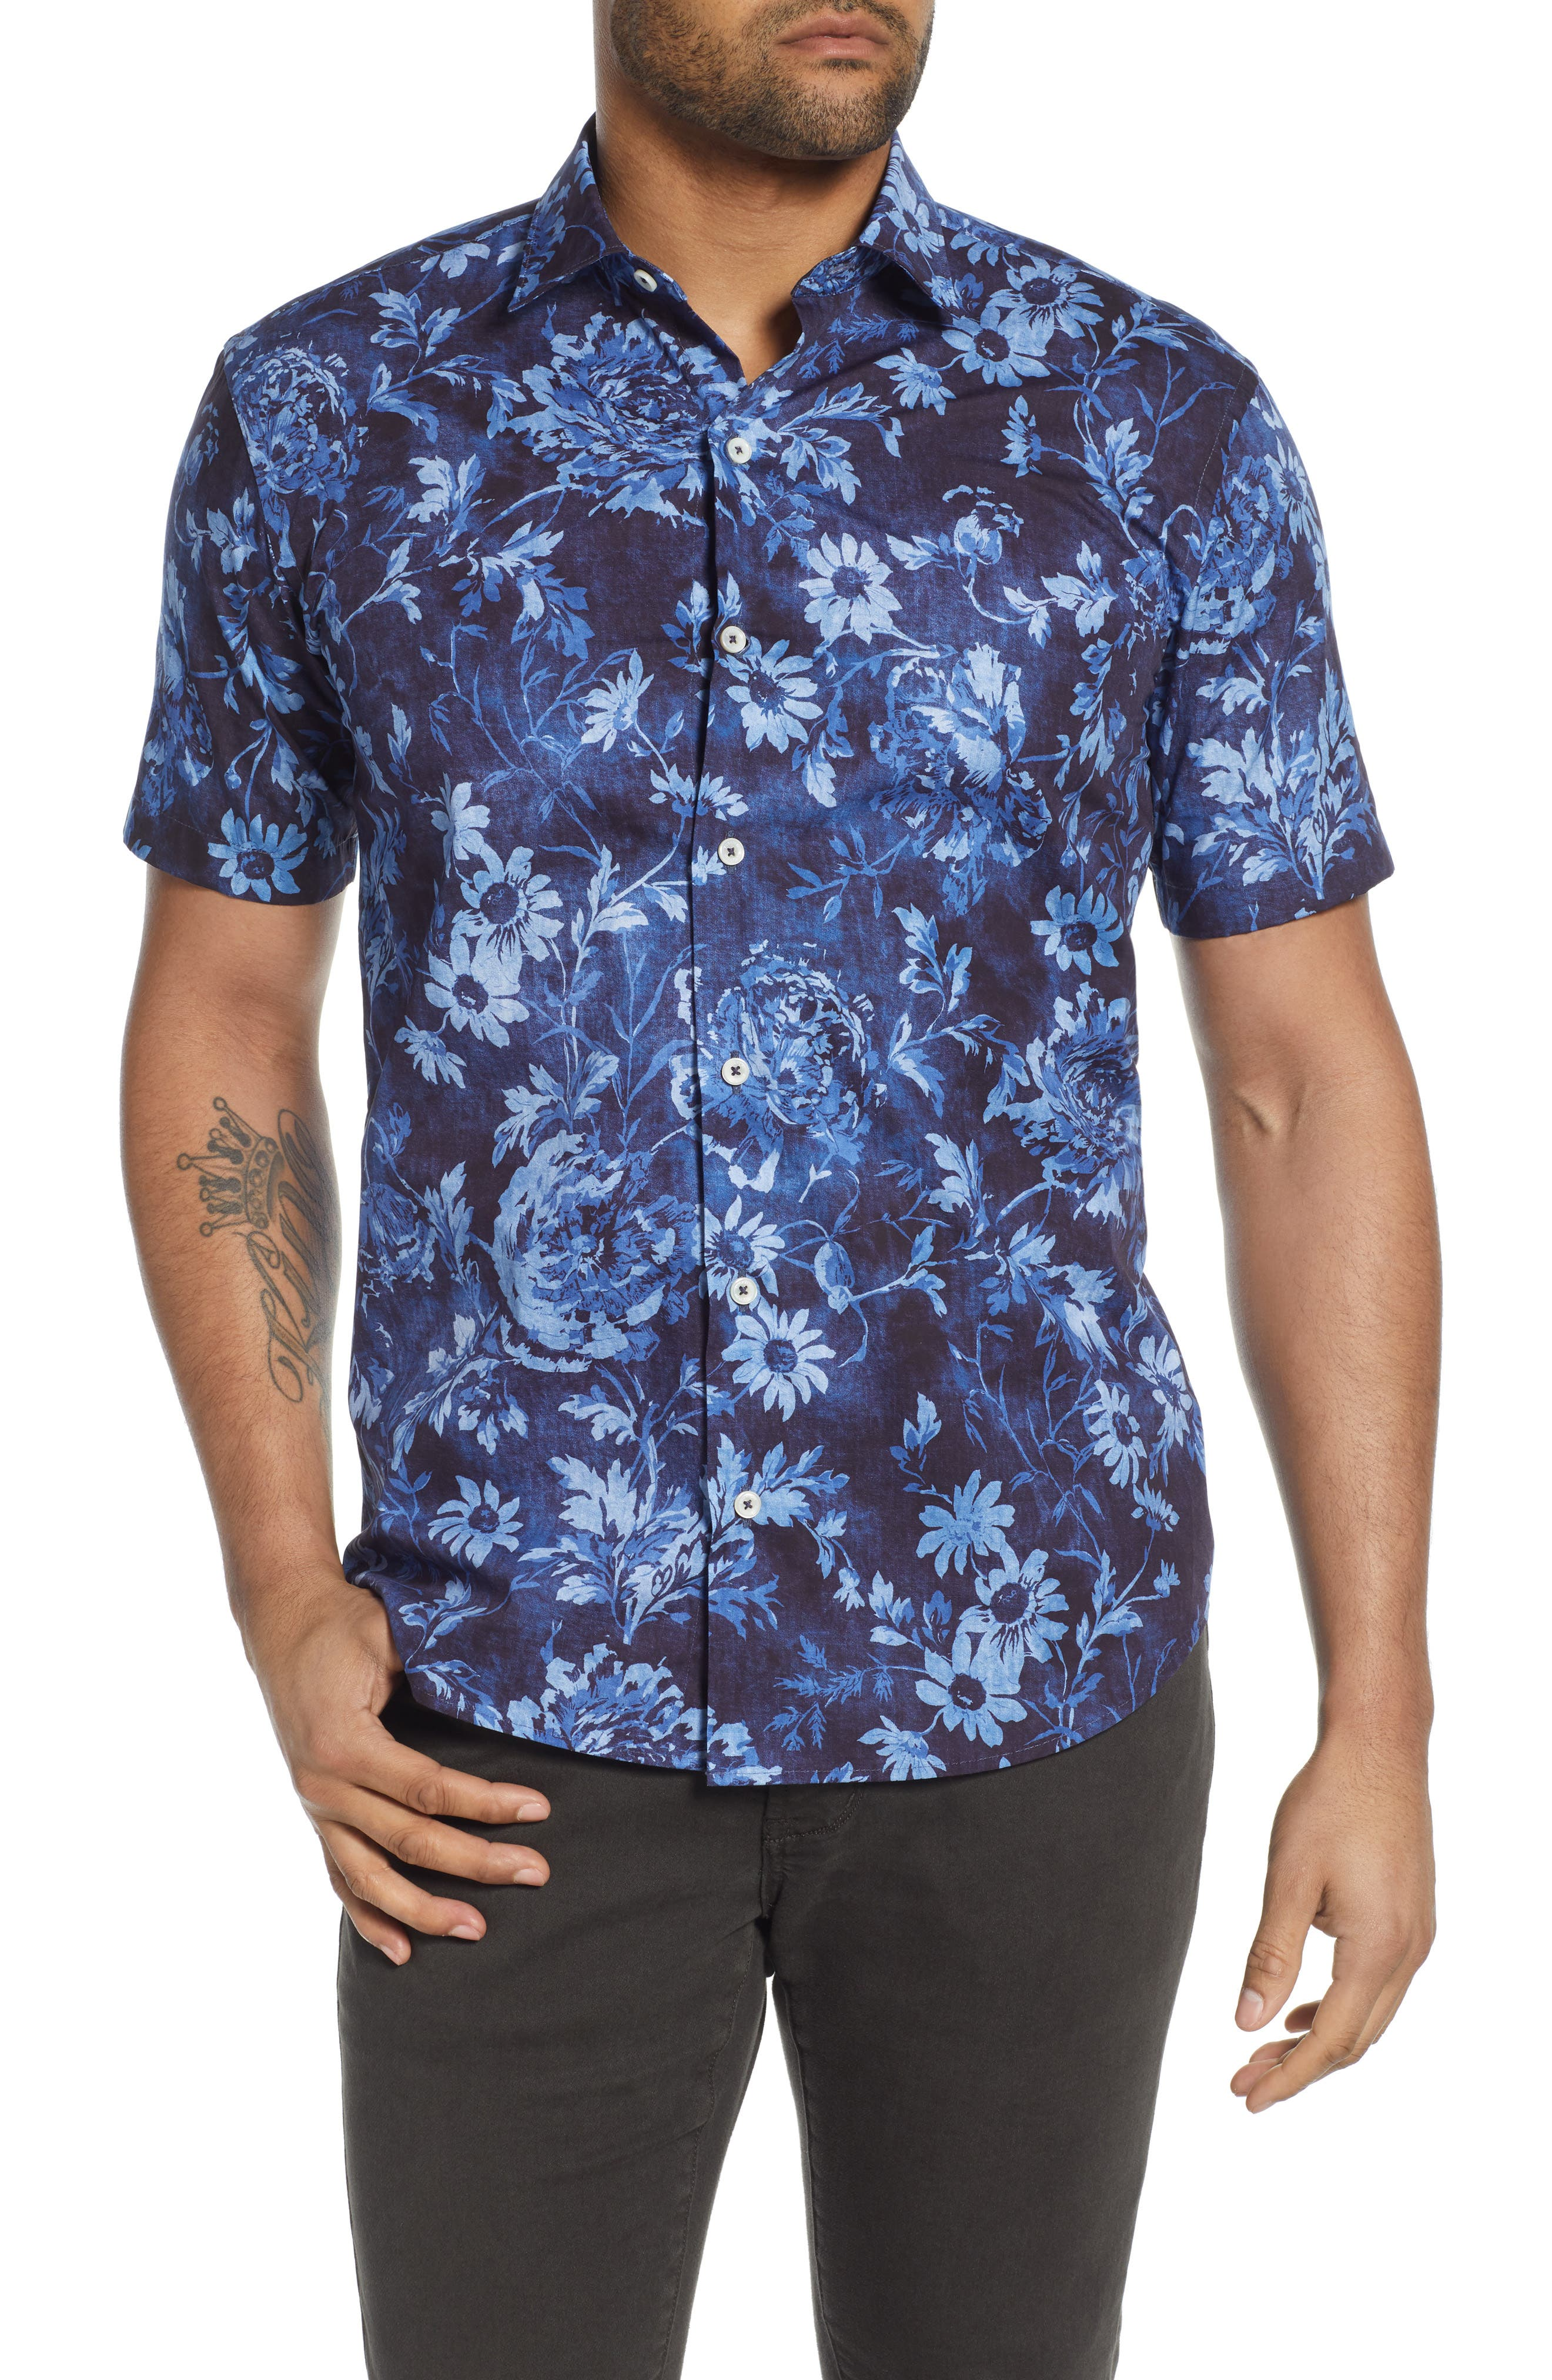 Watery flowers splash in a spectrum of blues all over a sport shirt tailored from crisp cotton in a fit that\\\'s easy to wear tucked or untucked. Style Name: Bugatchi Shaped Fit Floral Short Sleeve Button-Up Shirt. Style Number: 6039885. Available in stores.